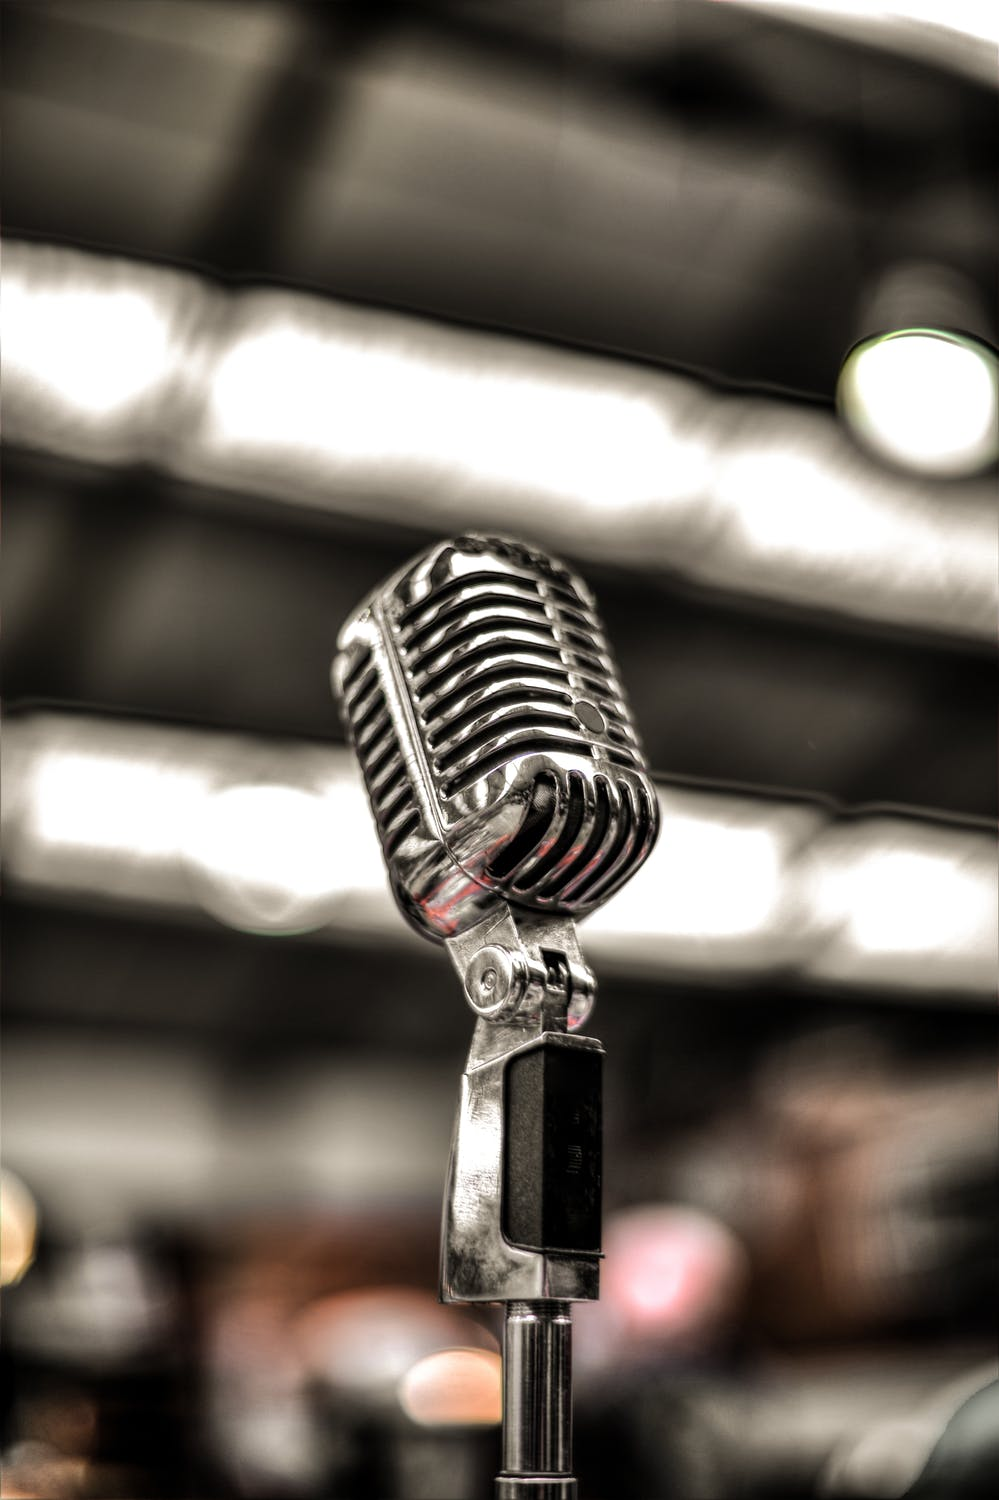 https://images.pexels.com/photos/675960/mic-music-sound-singer-675960.jpeg?auto=compress&cs=tinysrgb&dpr=2&h=750&w=1260